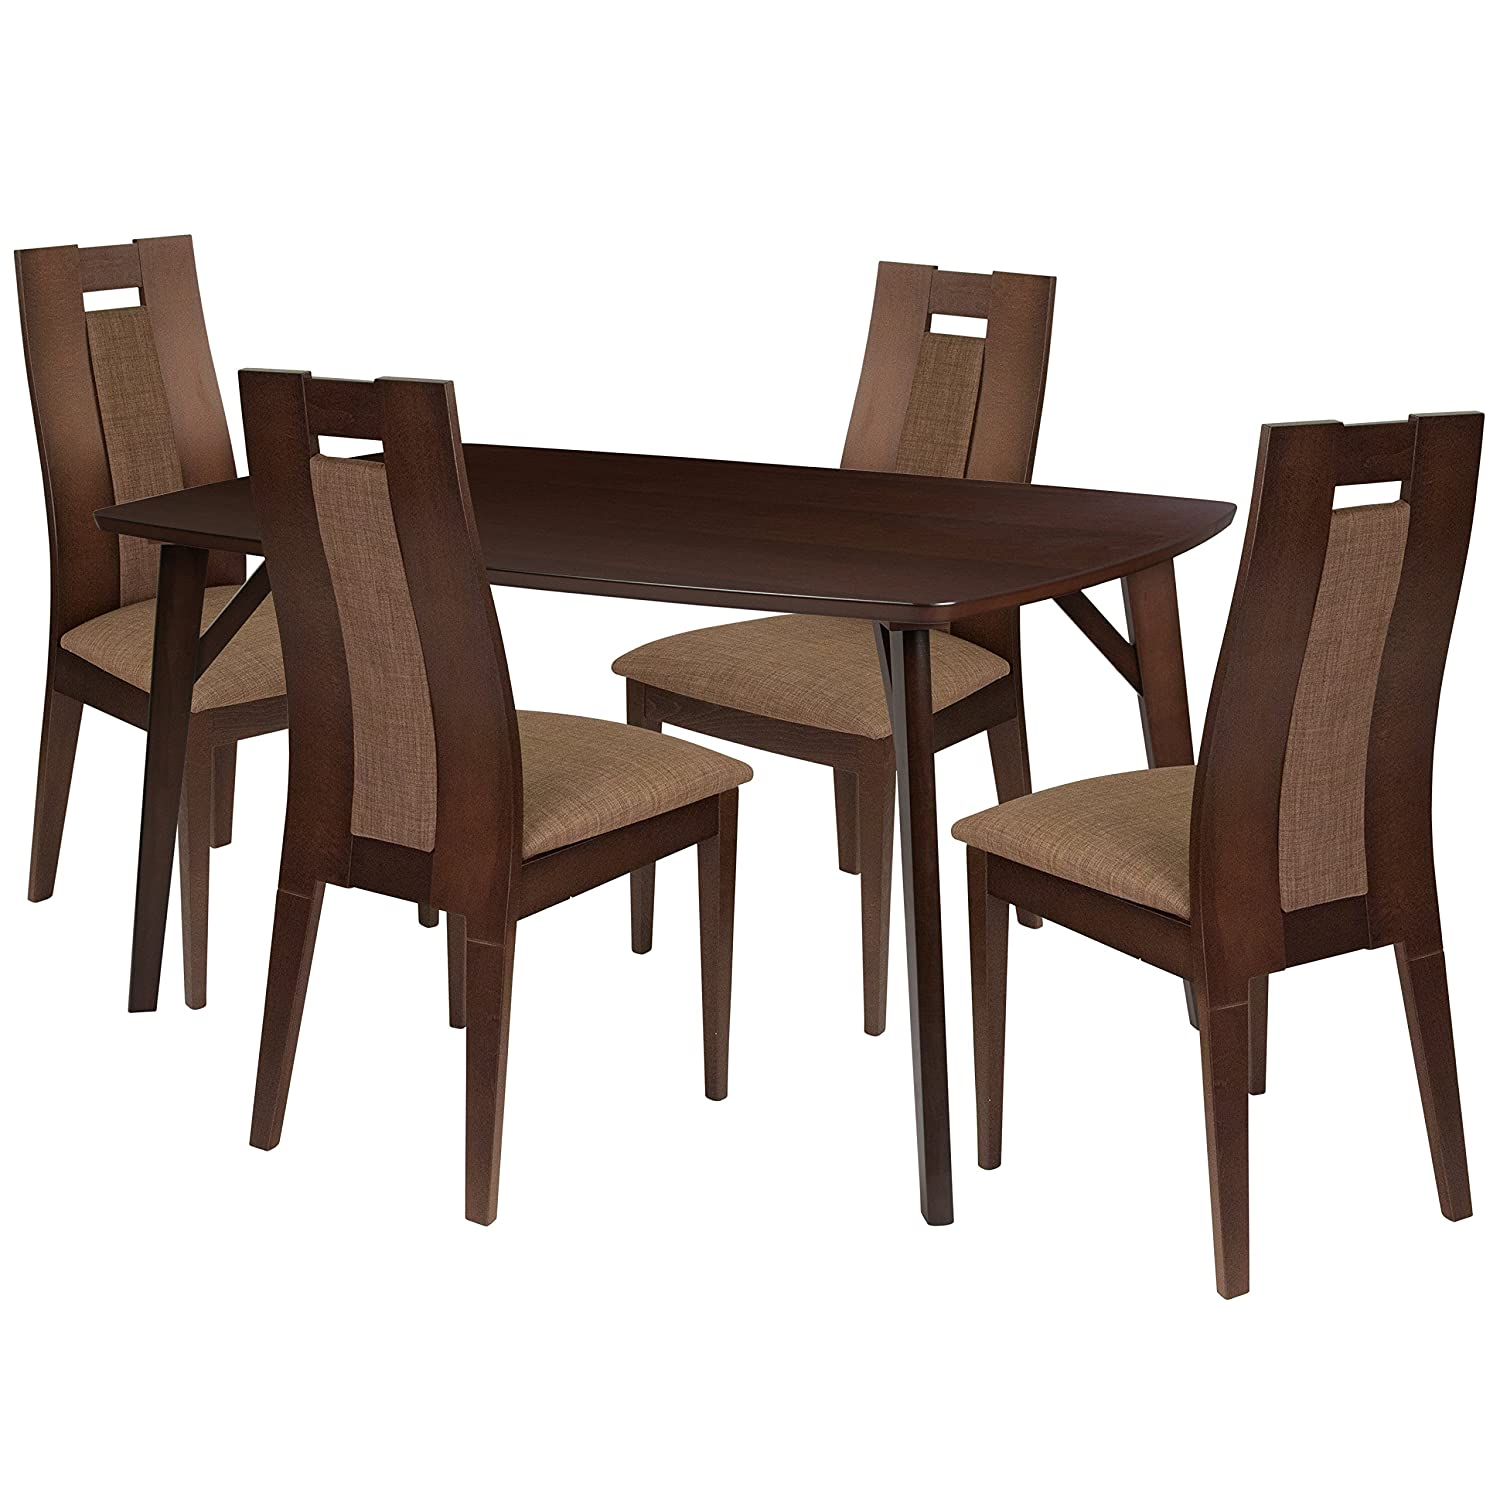 Amazon com flash furniture jefferson 5 piece espresso wood dining table set with curved slat wood dining chairs padded seats espresso beechwood kitchen